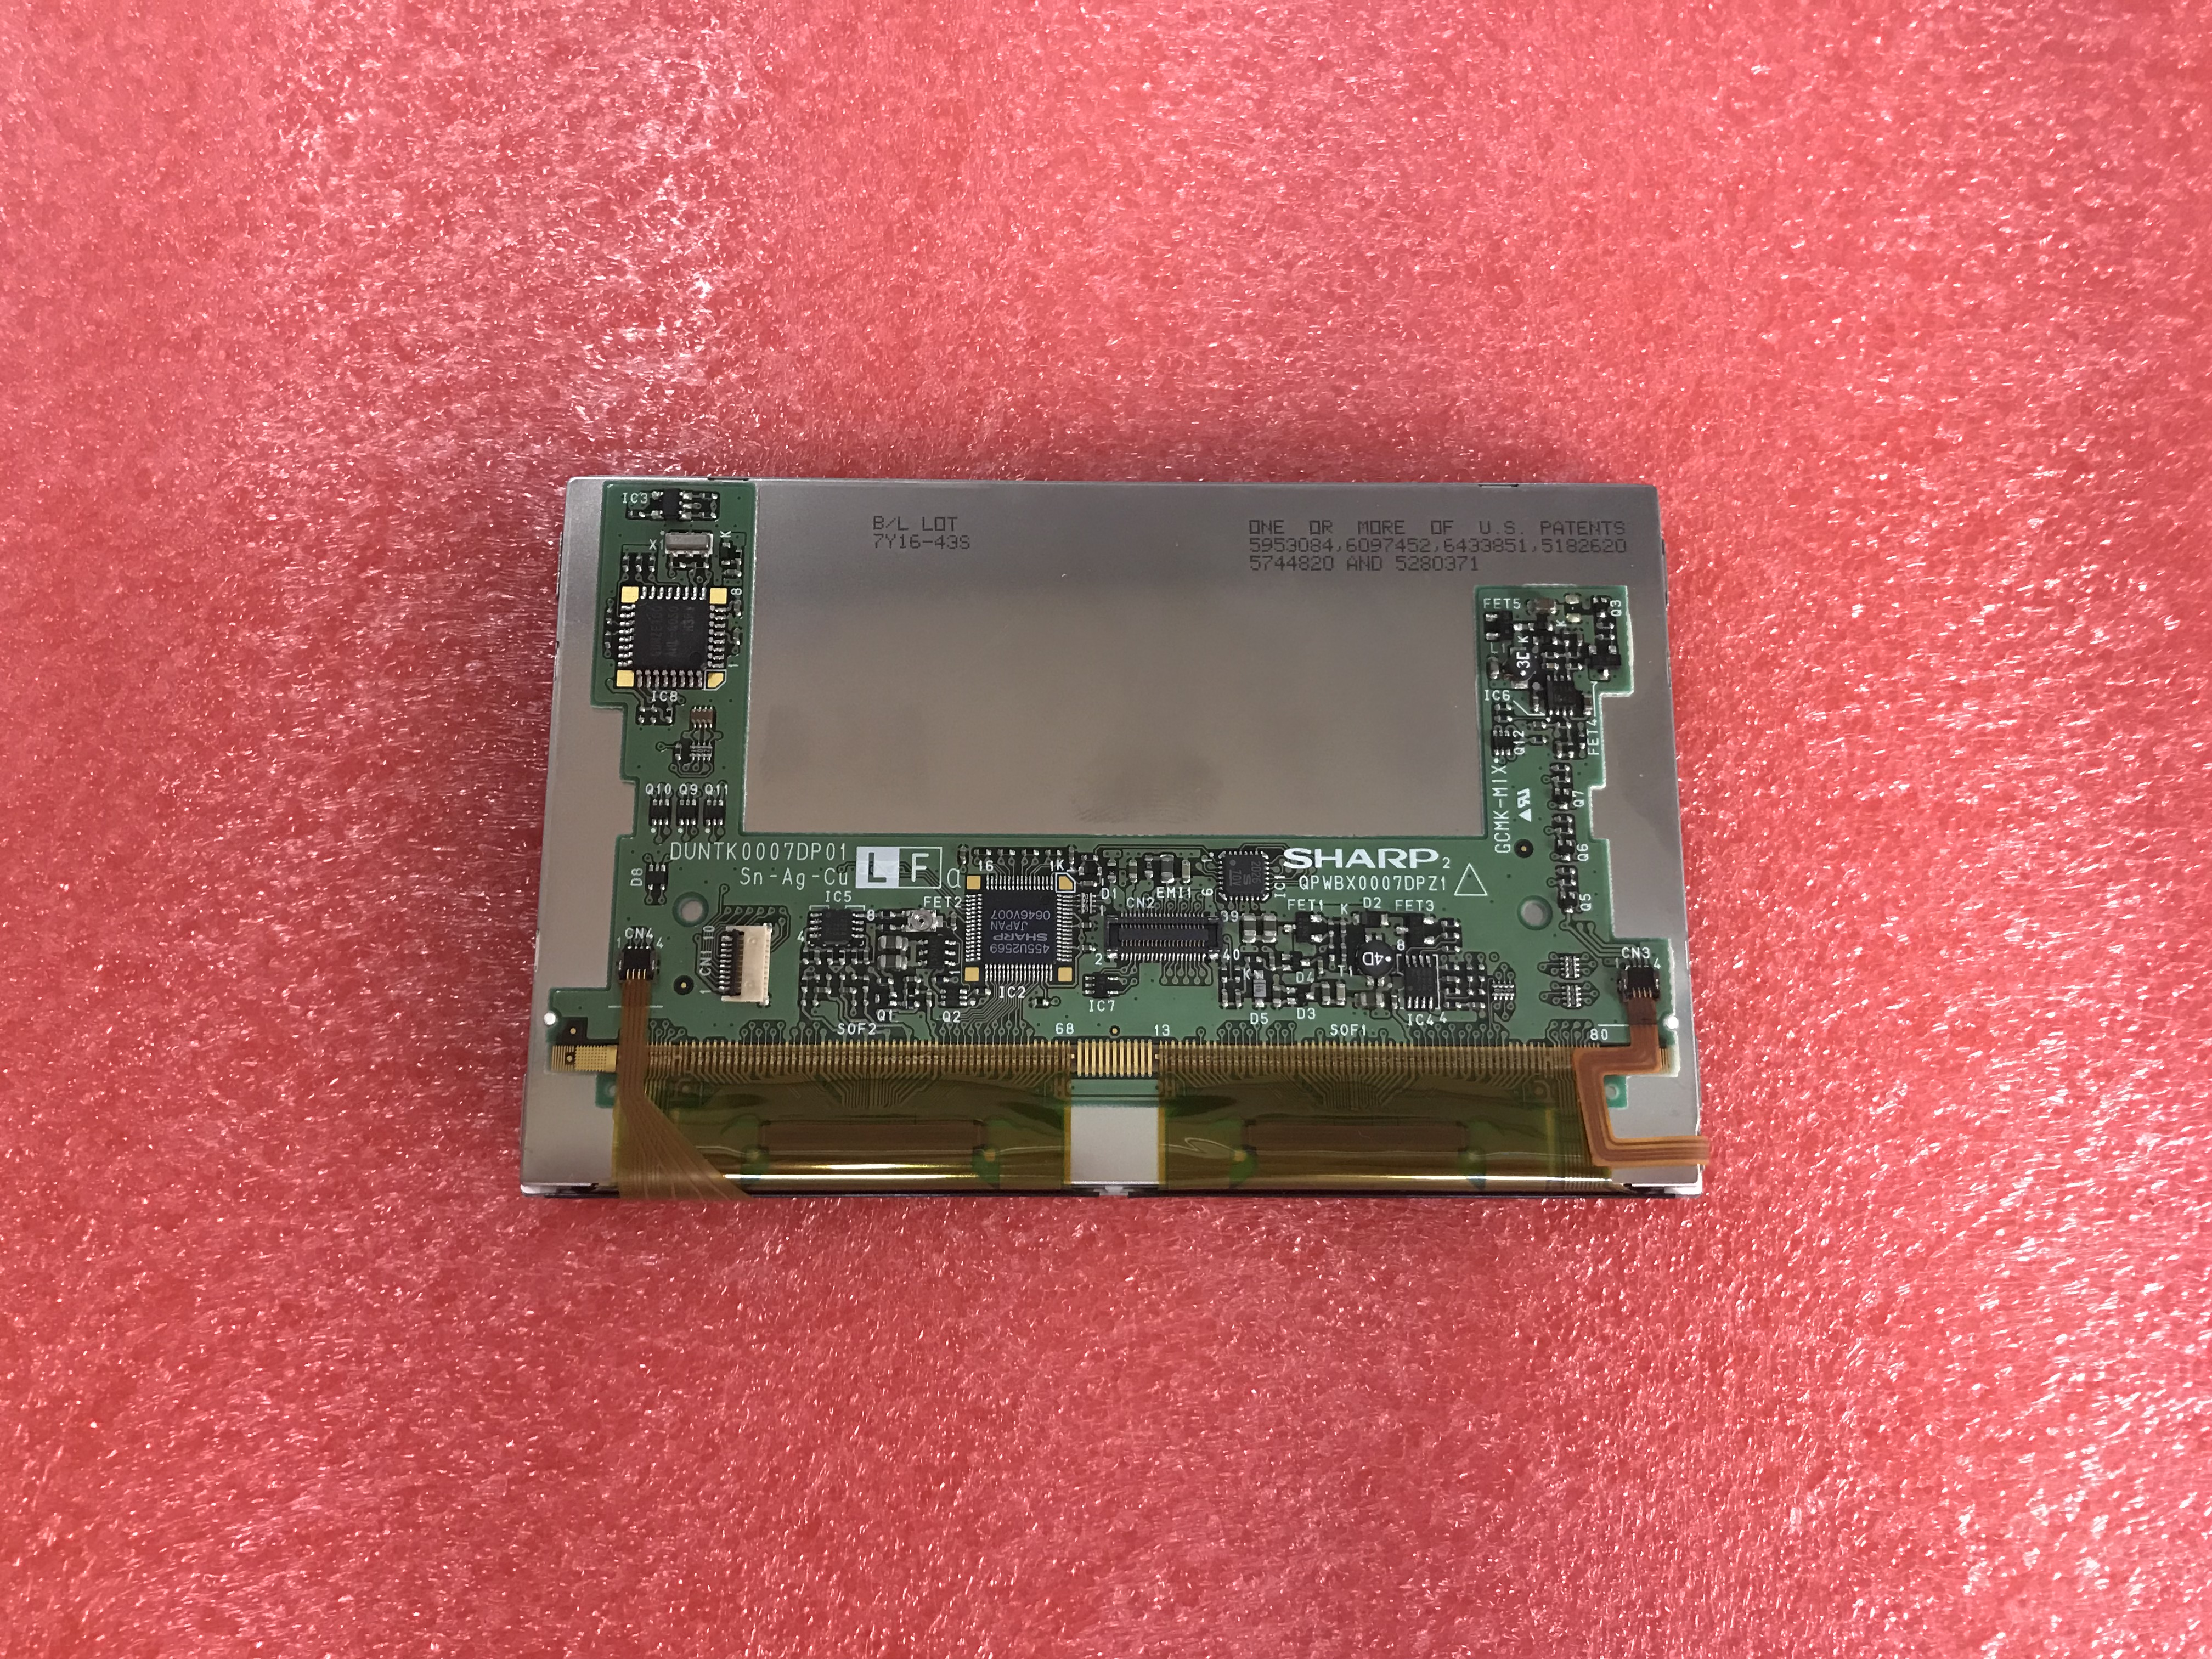 QPWBX0007DPZ1 LS045W1LA01 <font><b>4.5</b></font> <font><b>inch</b></font> industrial <font><b>LCD</b></font> <font><b>with</b></font> <font><b>touch</b></font> panel,new&original in stock image